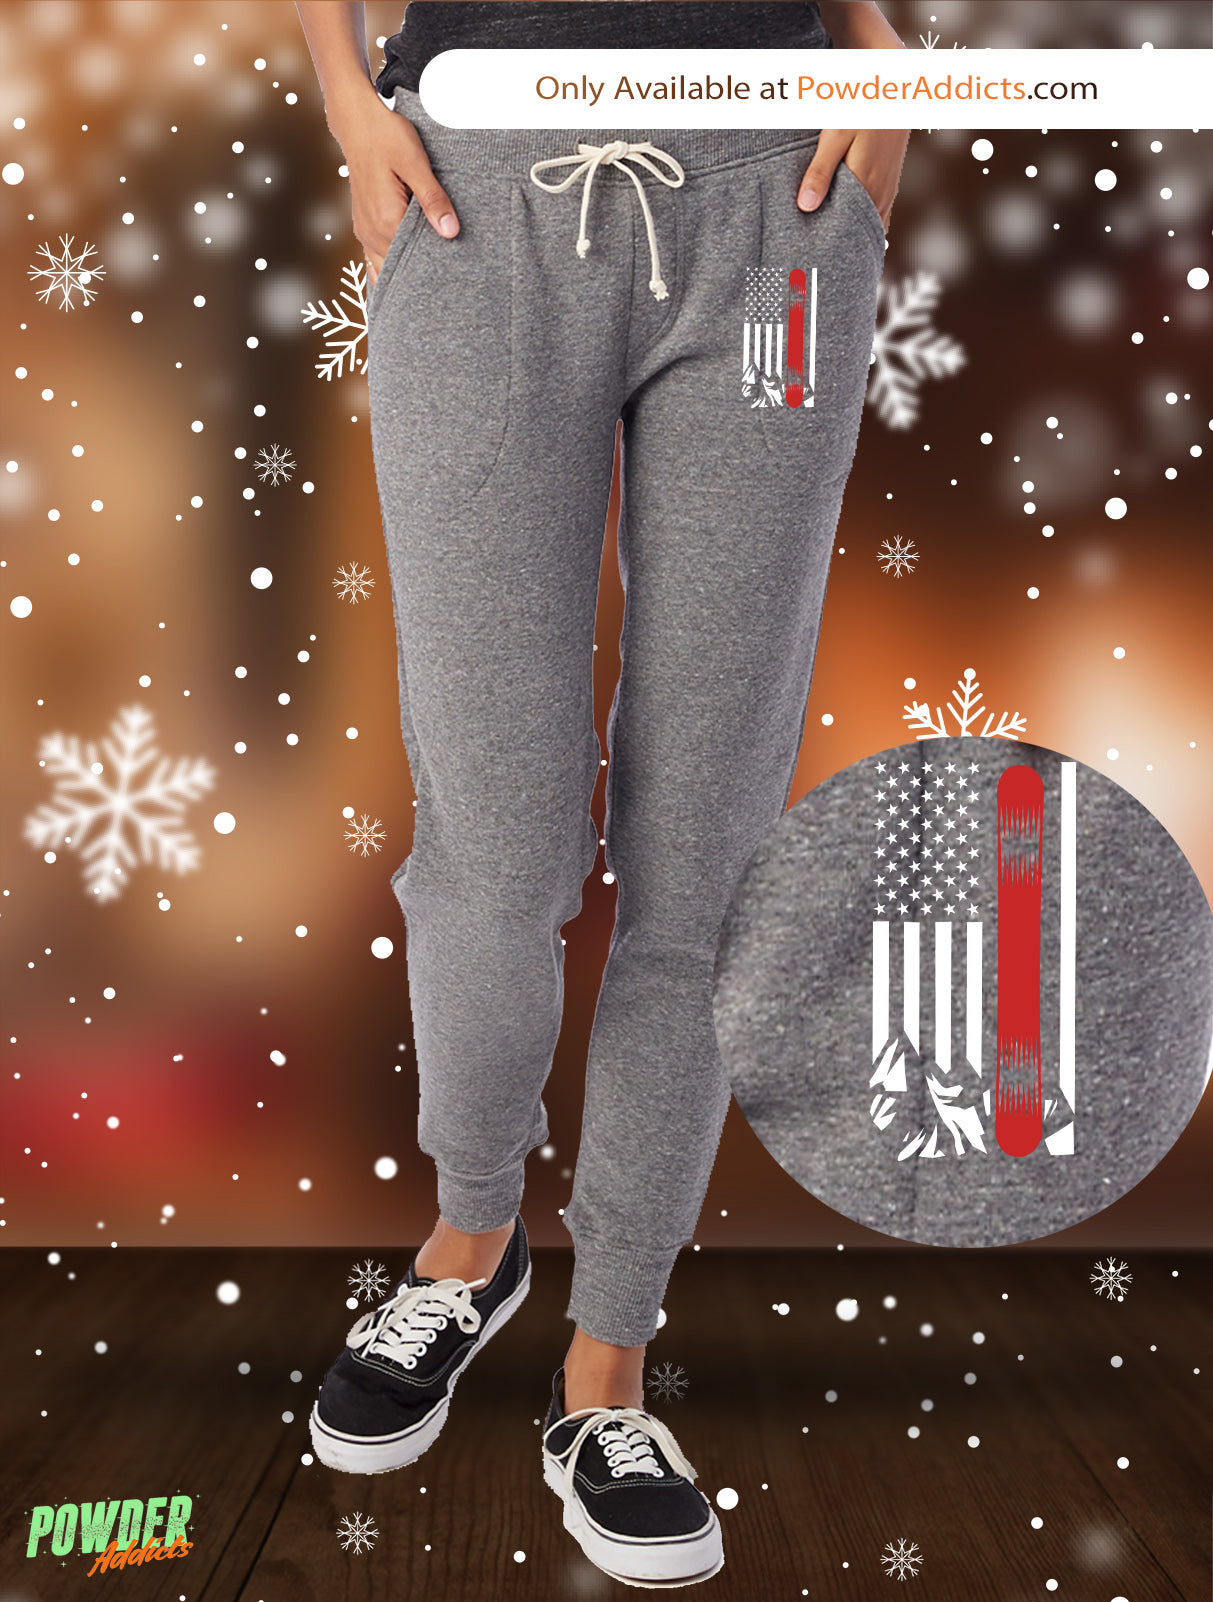 USA Snowboard Flag Thin Red Line Women's Adult Fleece Jogger - Powderaddicts